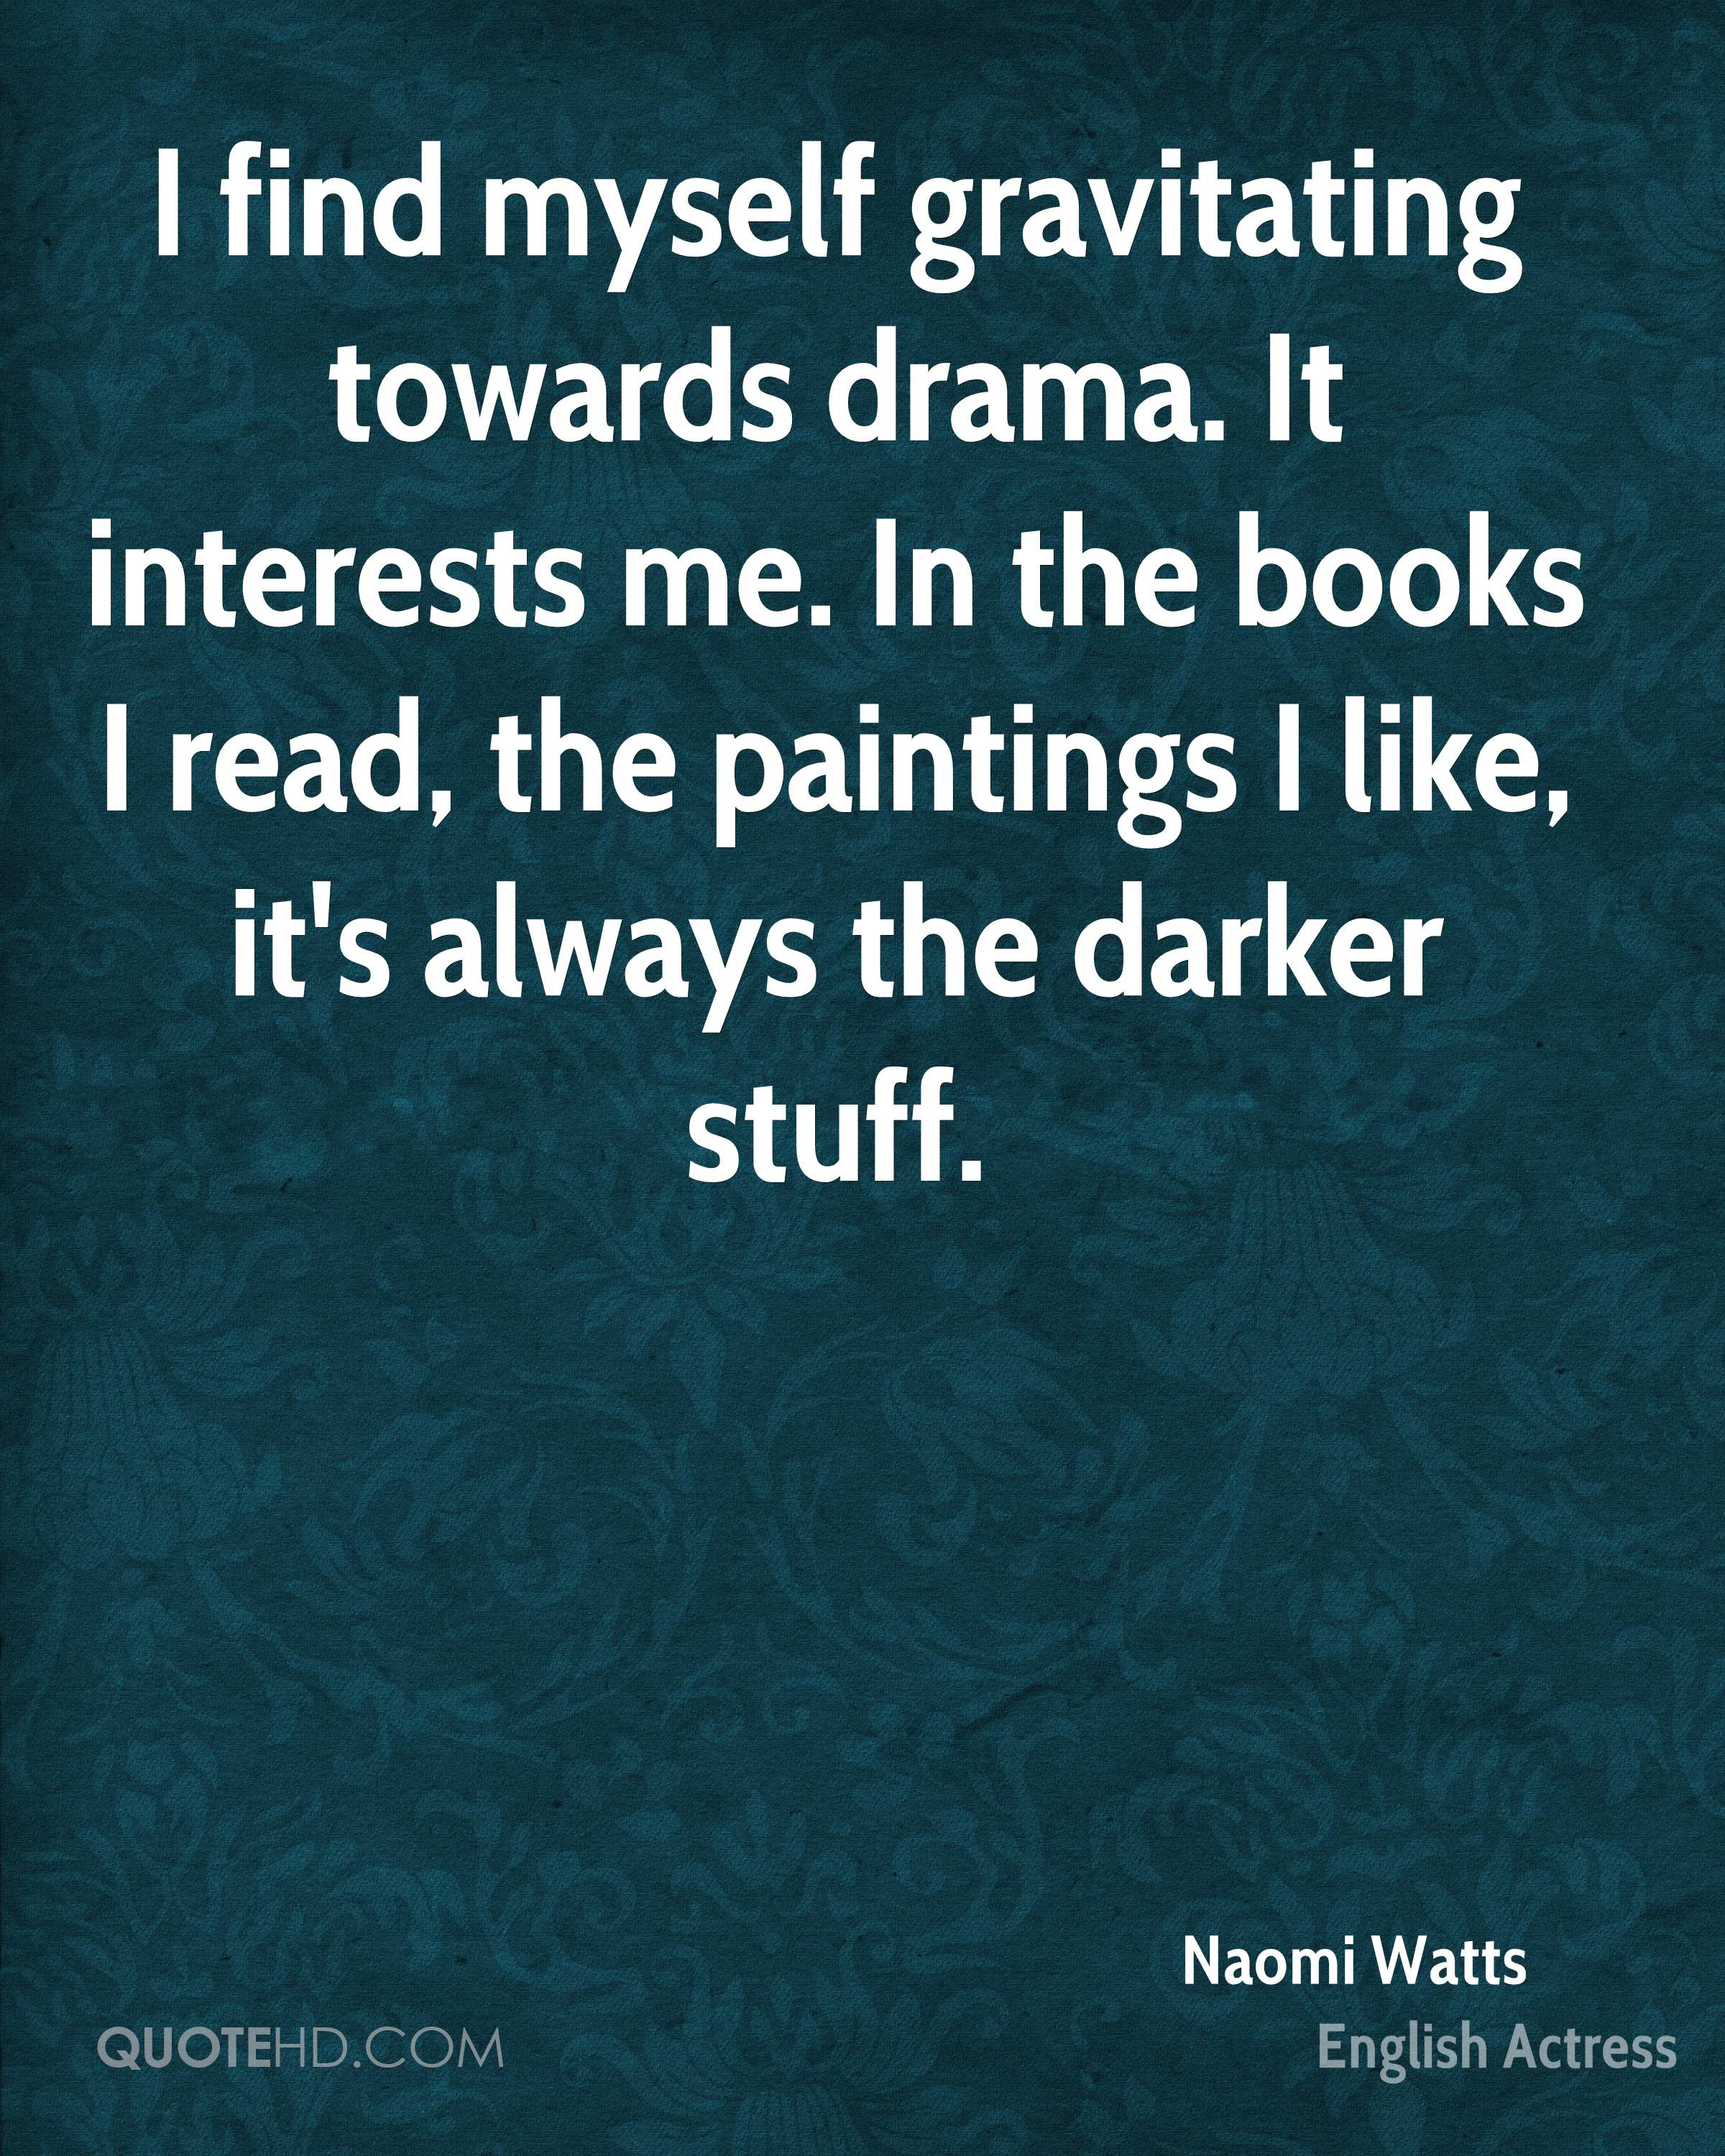 I find myself gravitating towards drama. It interests me. In the books I read, the paintings I like, it's always the darker stuff.